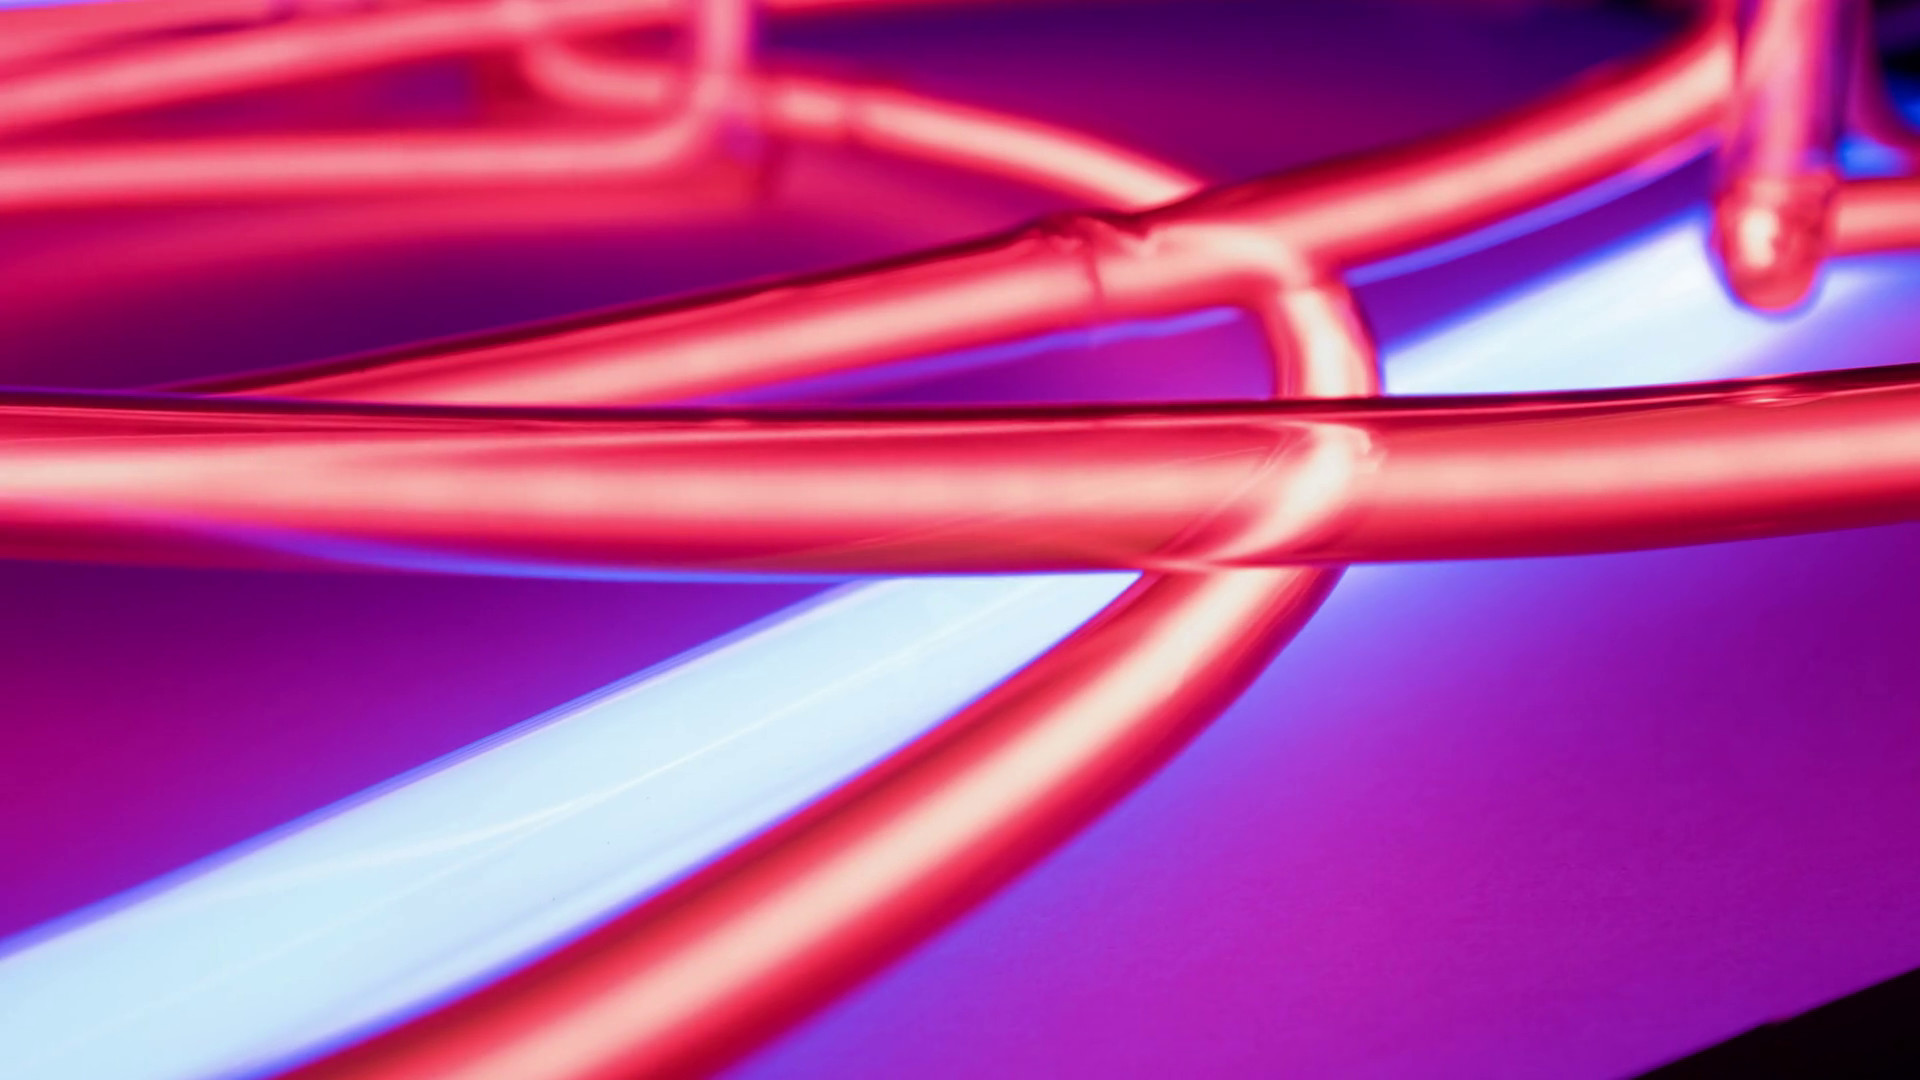 1920x1080 Energy neon abstract lights motion wallpaper concept Stock Video Footage -  VideoBlocks